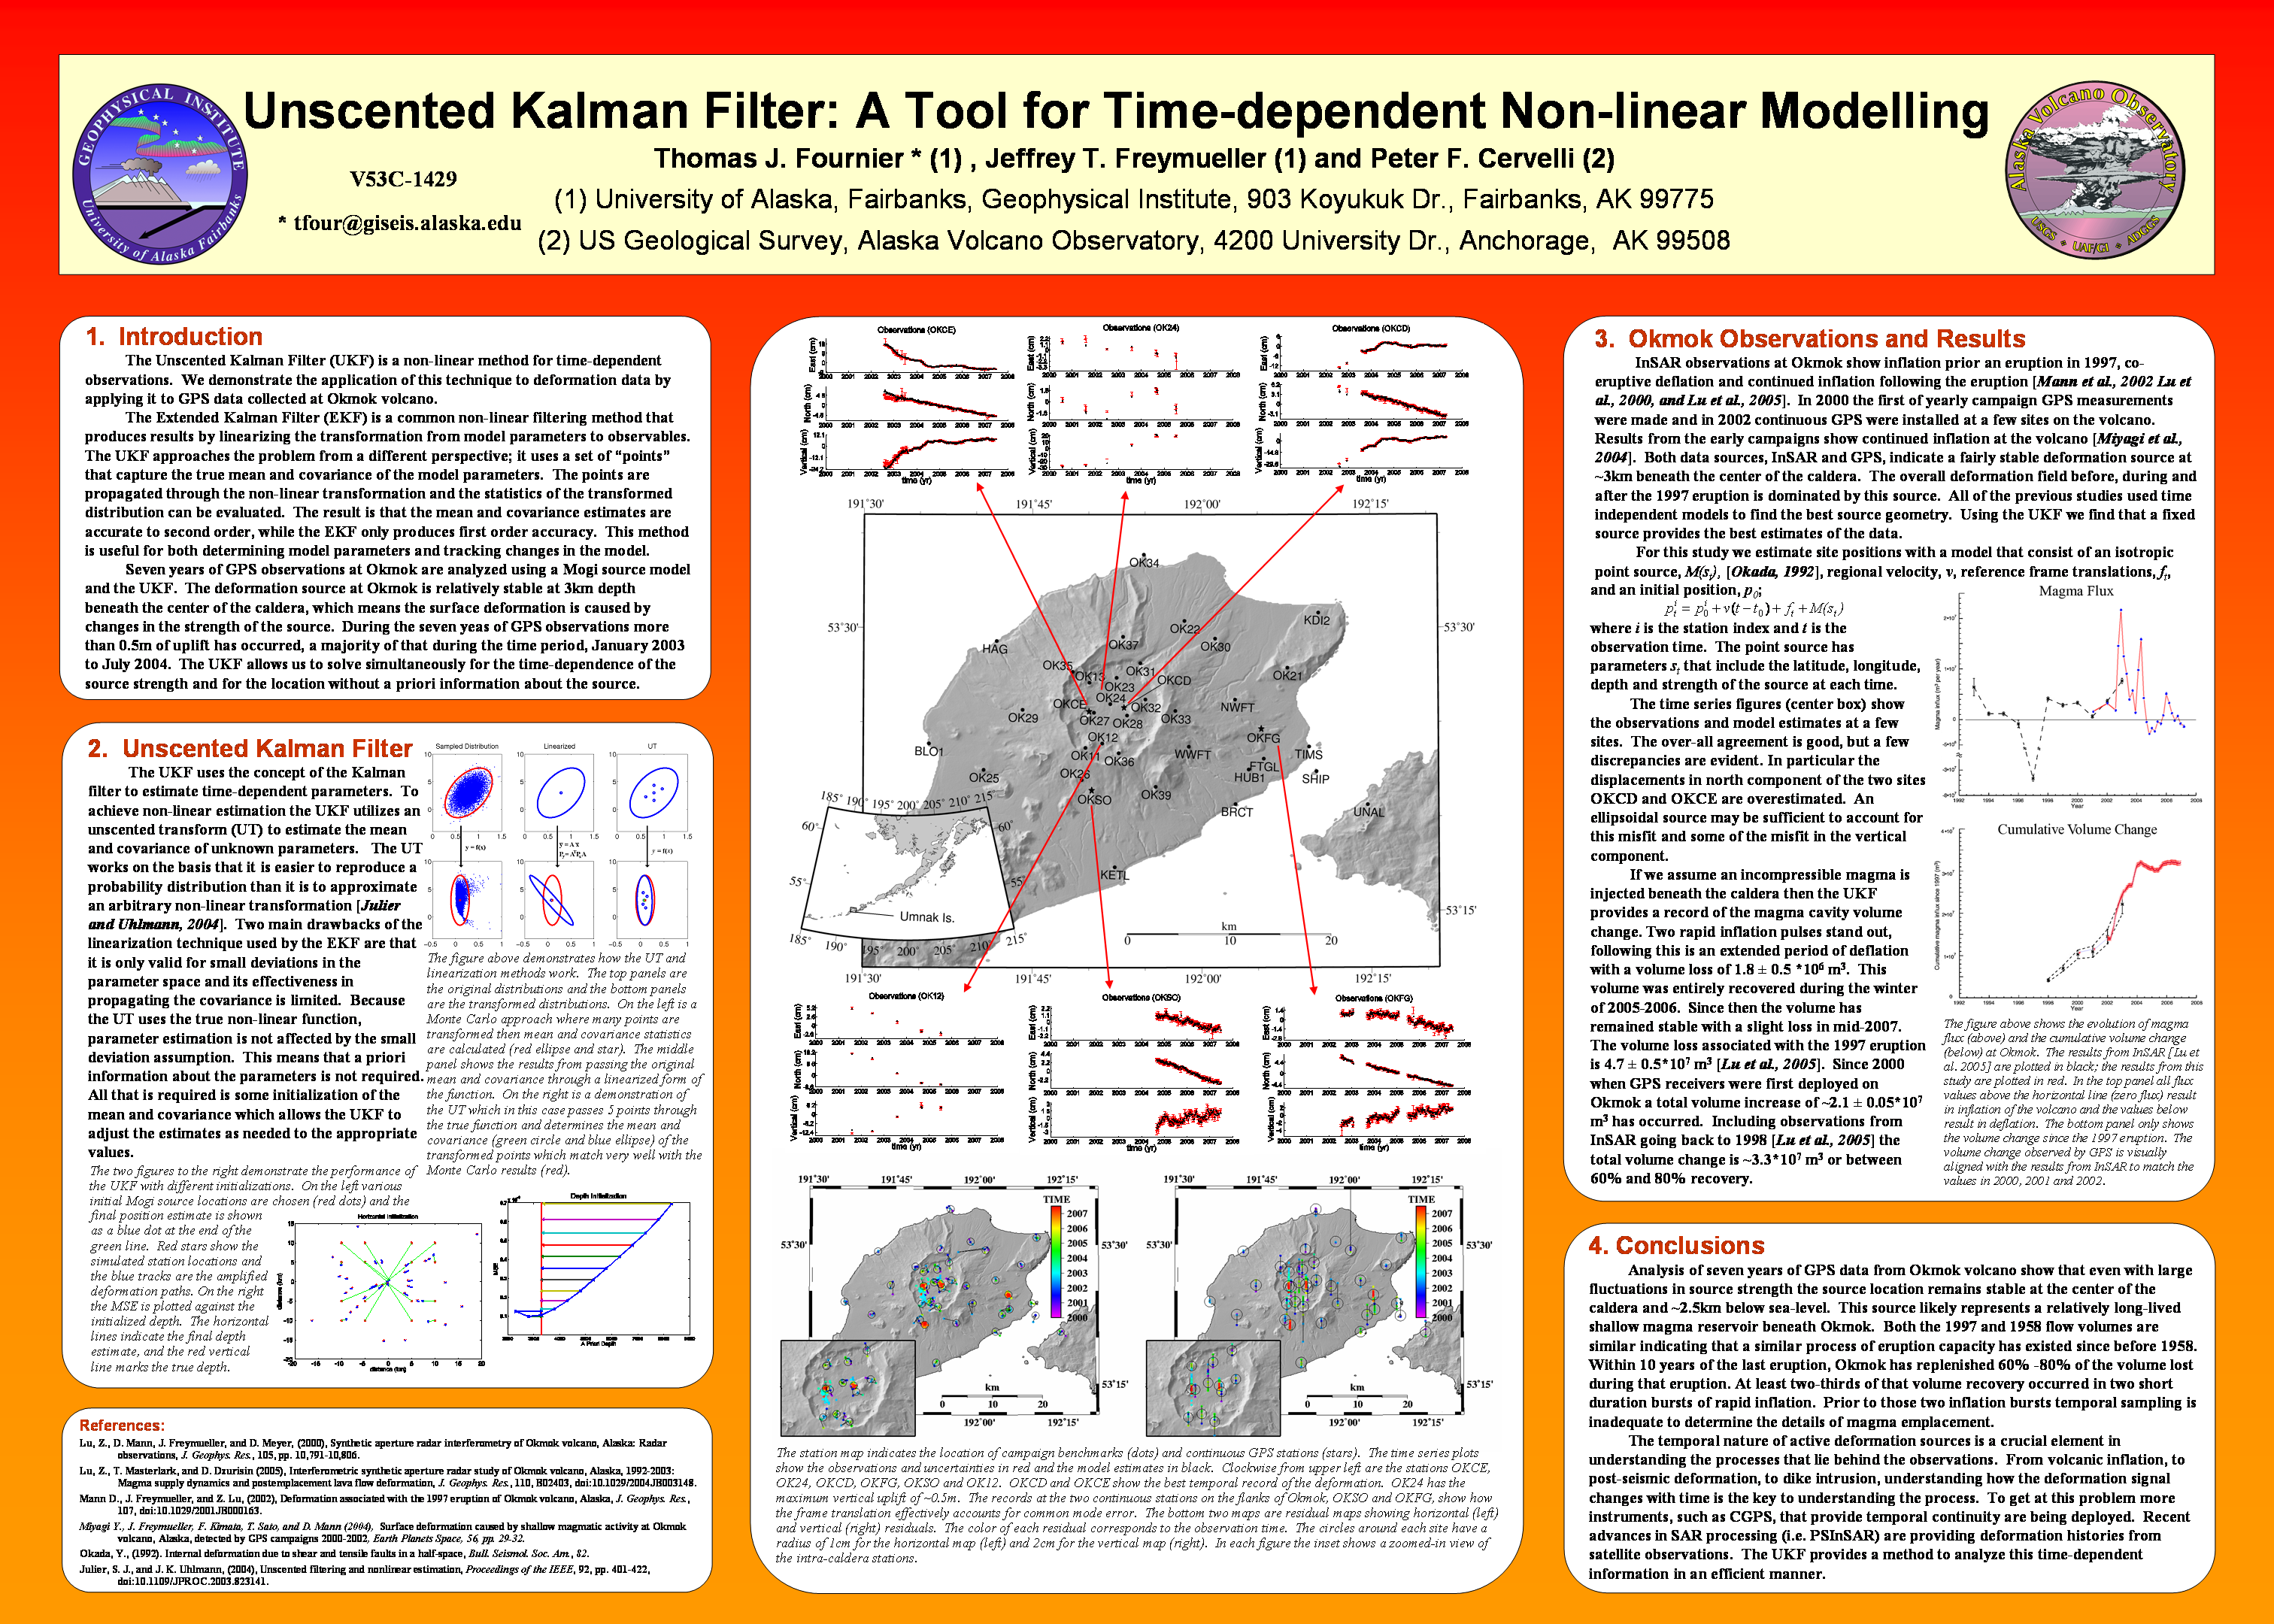 abstract guidelines for poster presentation